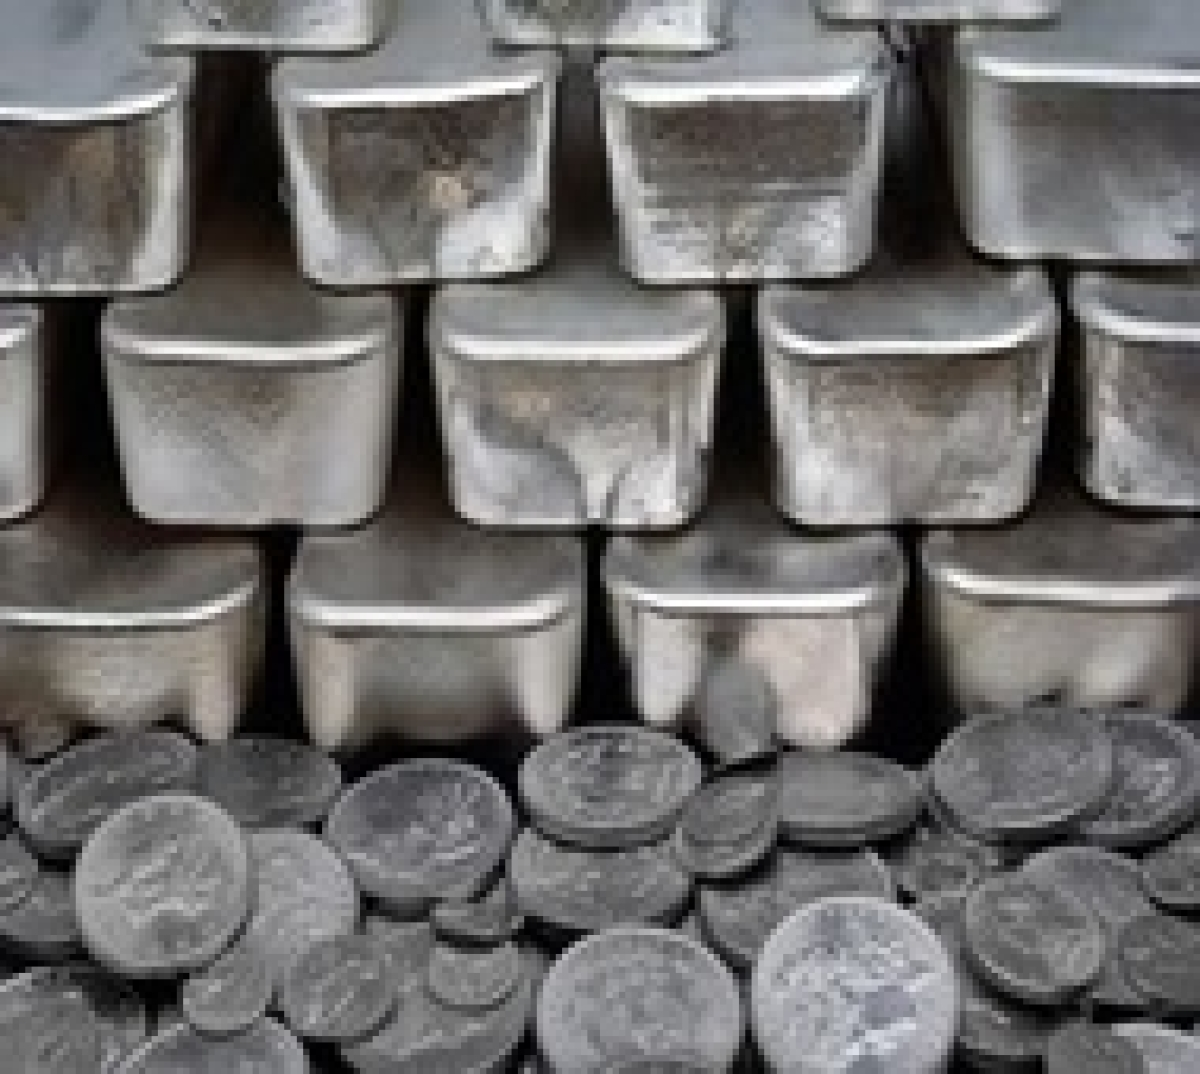 Silver futures down Rs 123 on profit-booking